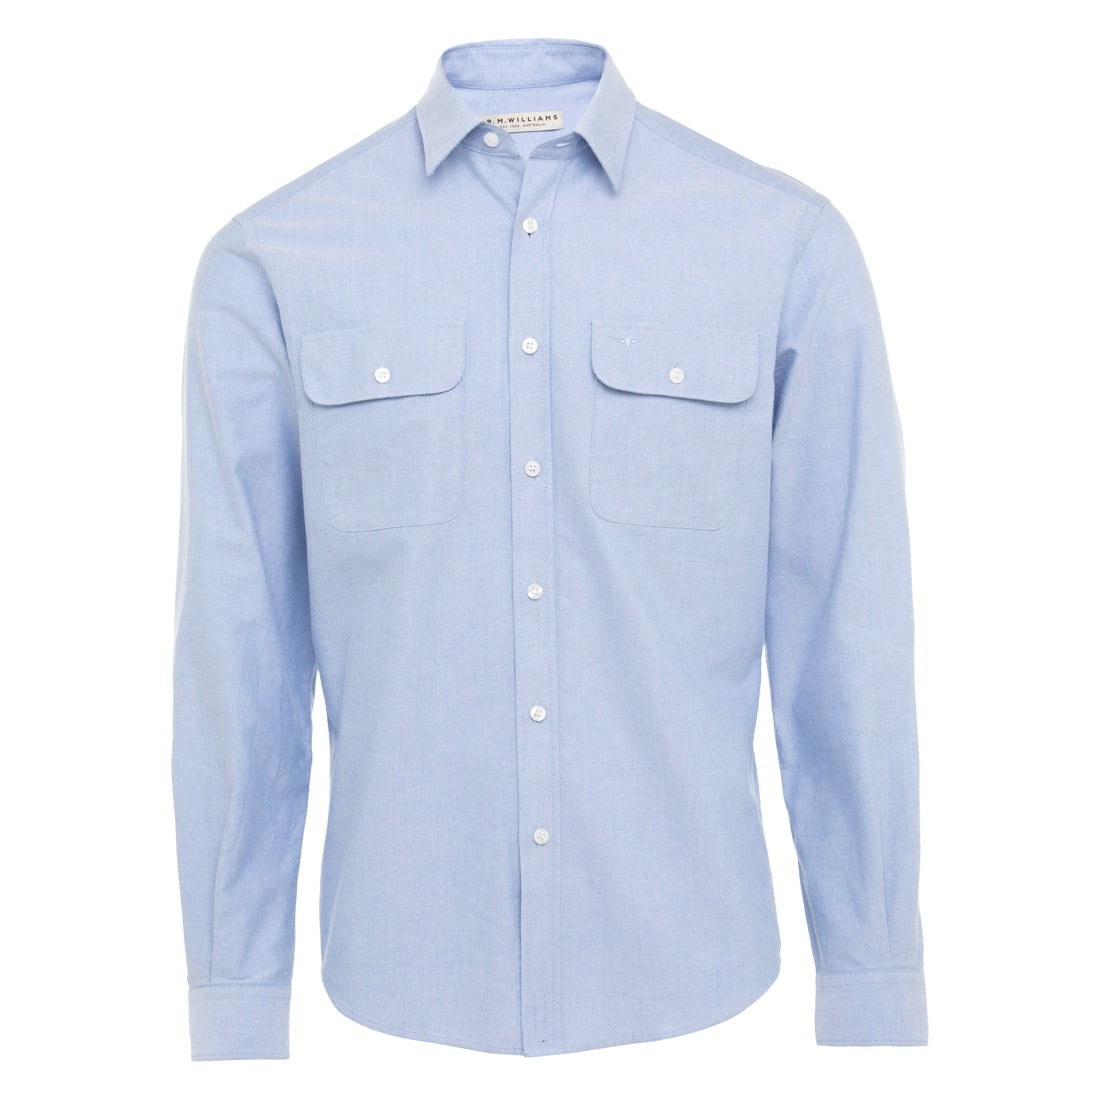 R.M.Williams Bourke Shirt Light Blue Regular Fit